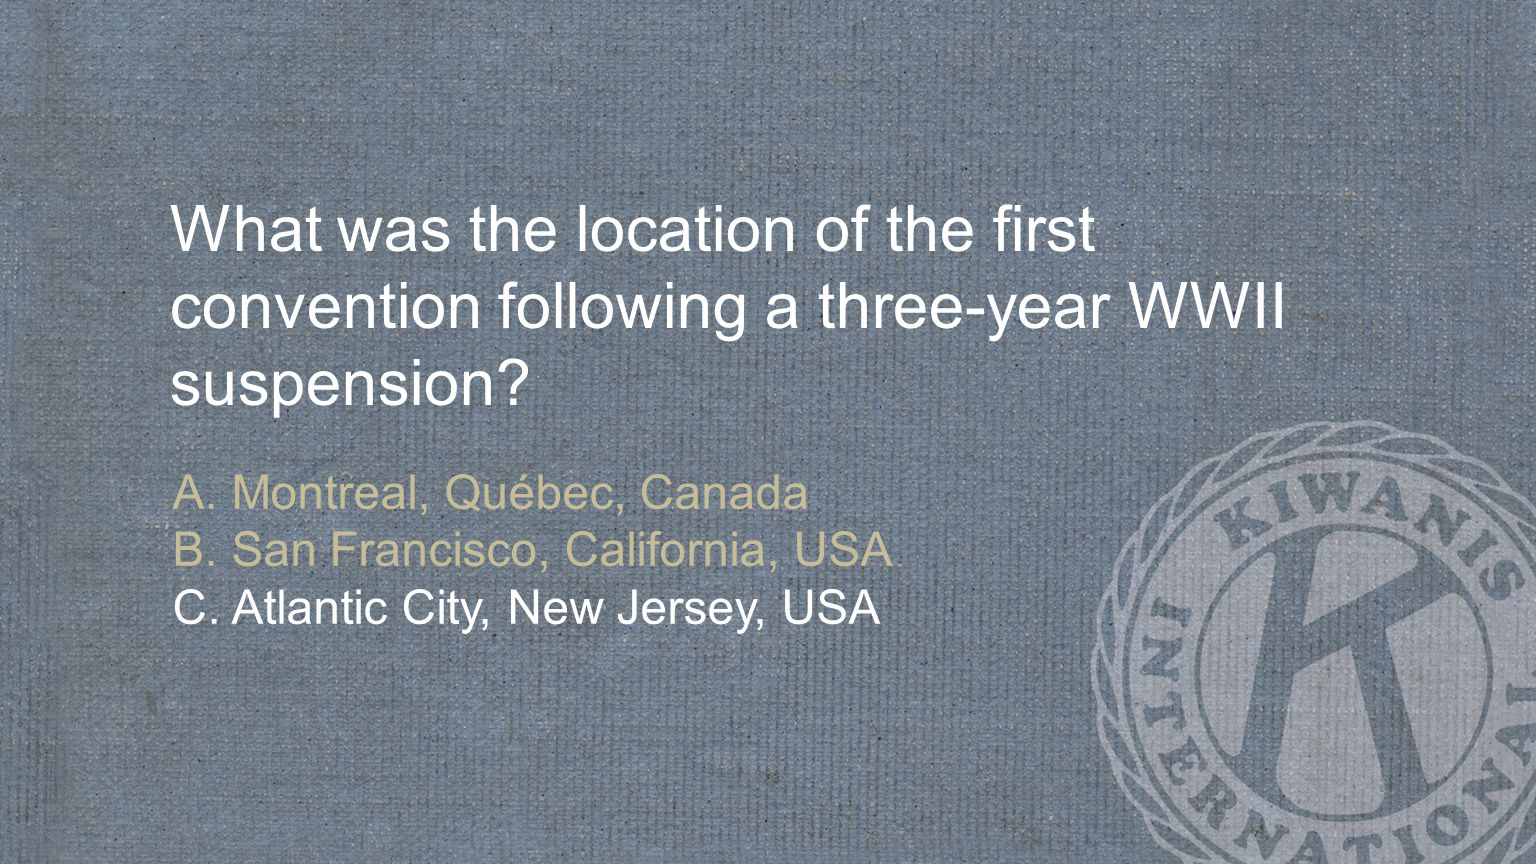 What was the location of the first convention following a three-year WWII suspension